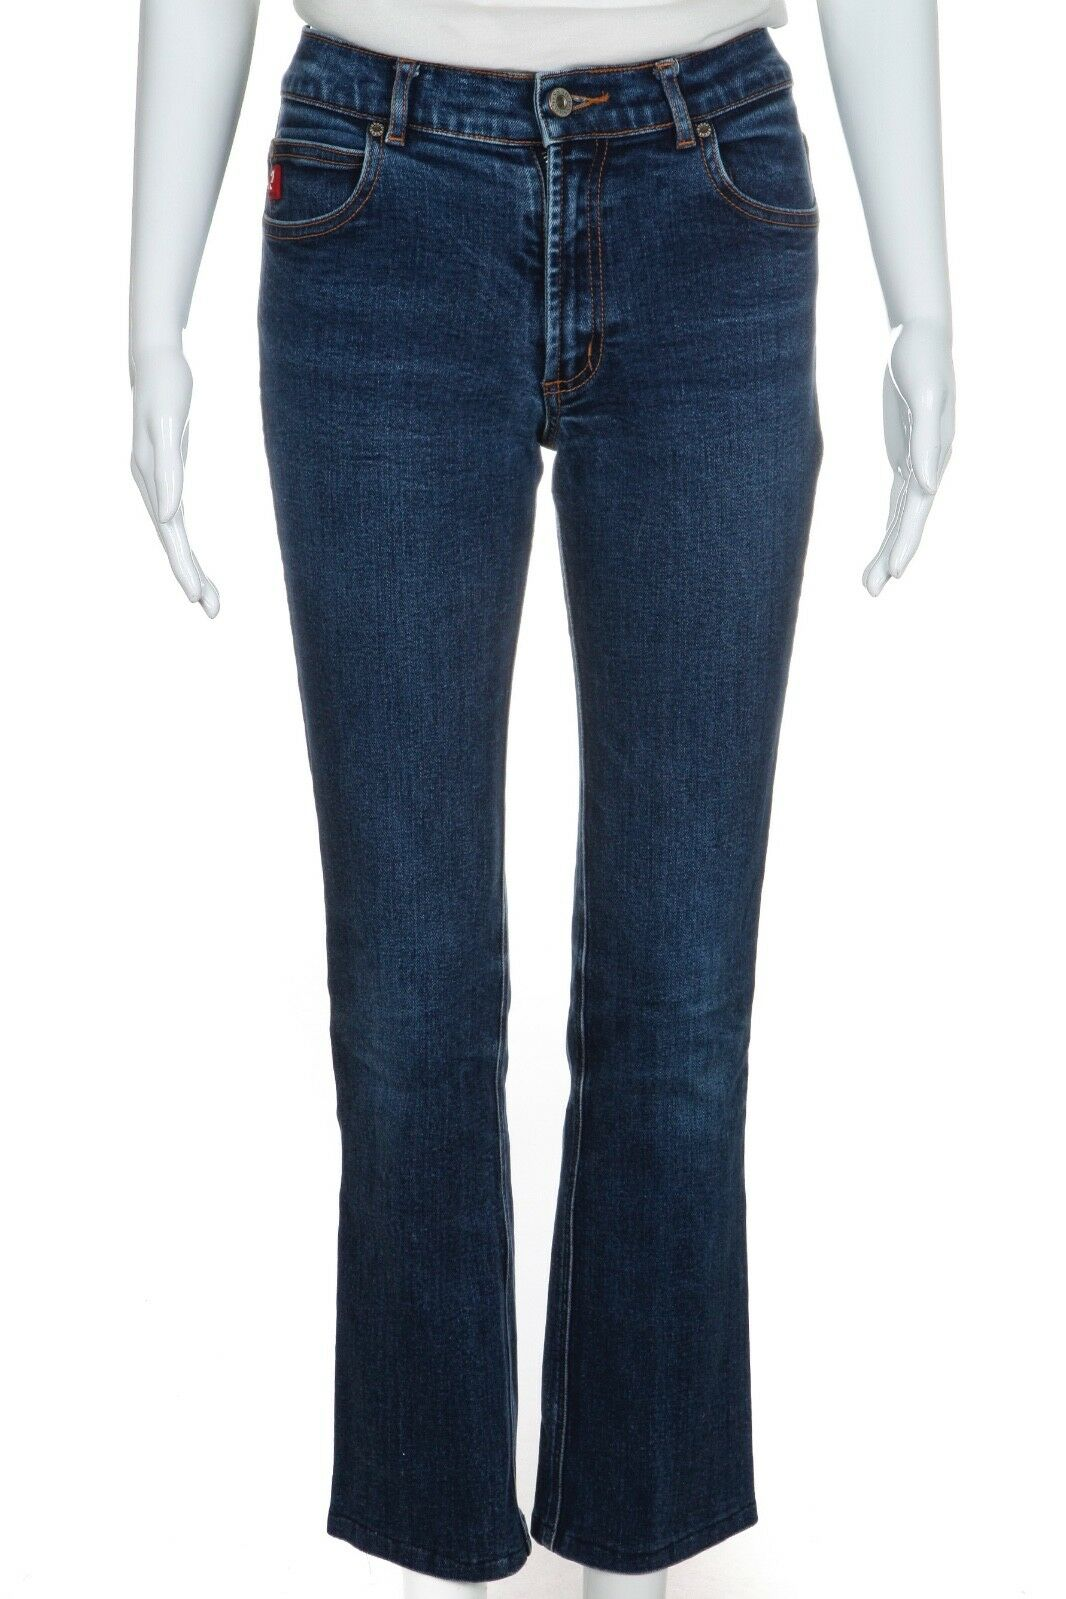 GUESS Women's Stretch Boot Cut 26 Jeans Medium Wash bluee Retro 90s Vintage